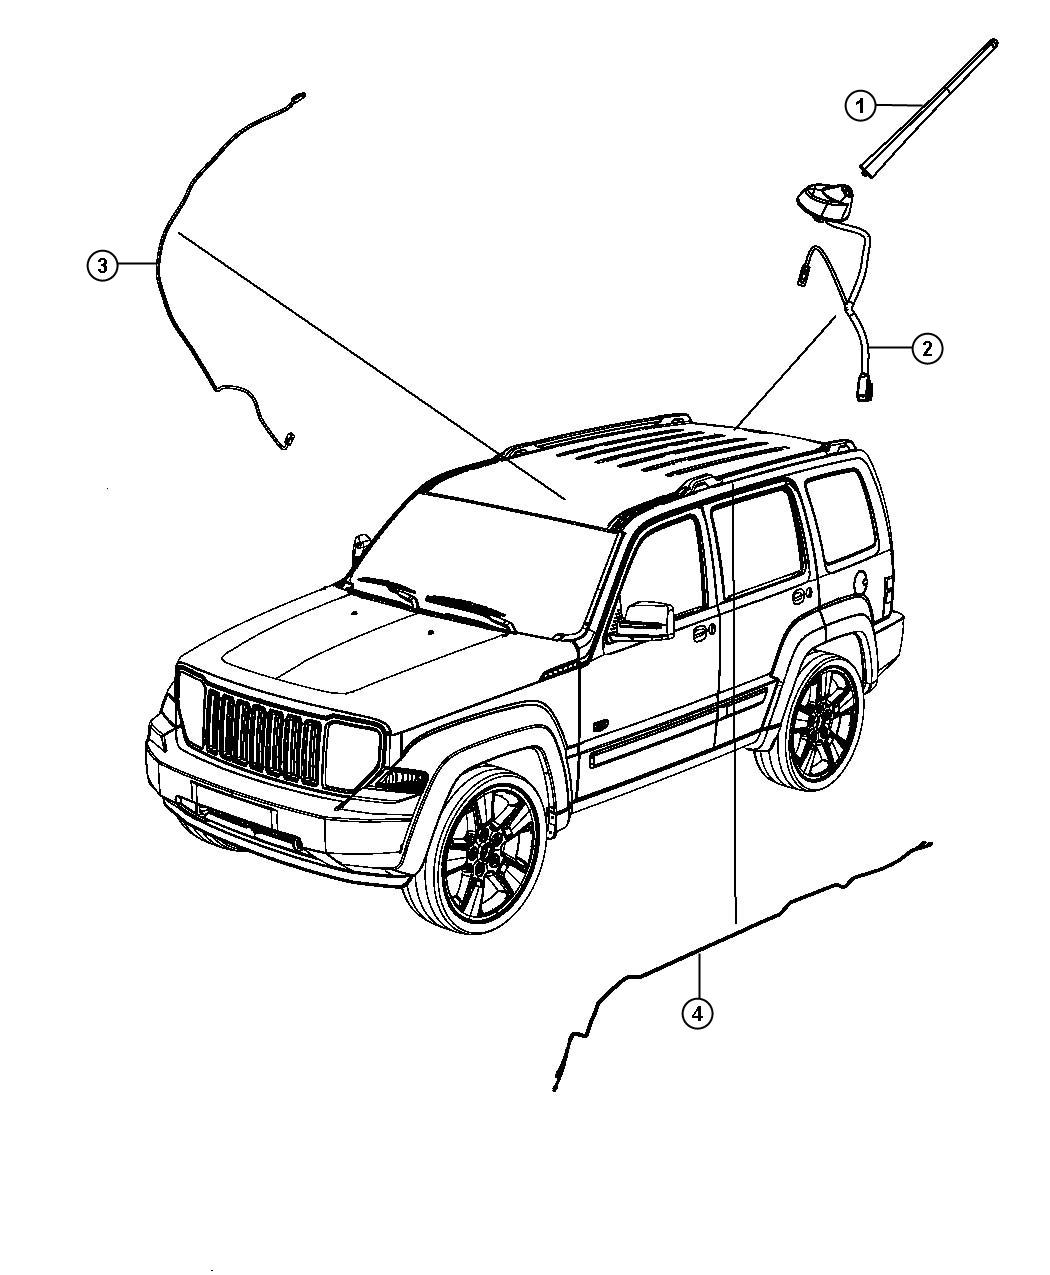 2012 Jeep Liberty Antenna. Used for: base cable and